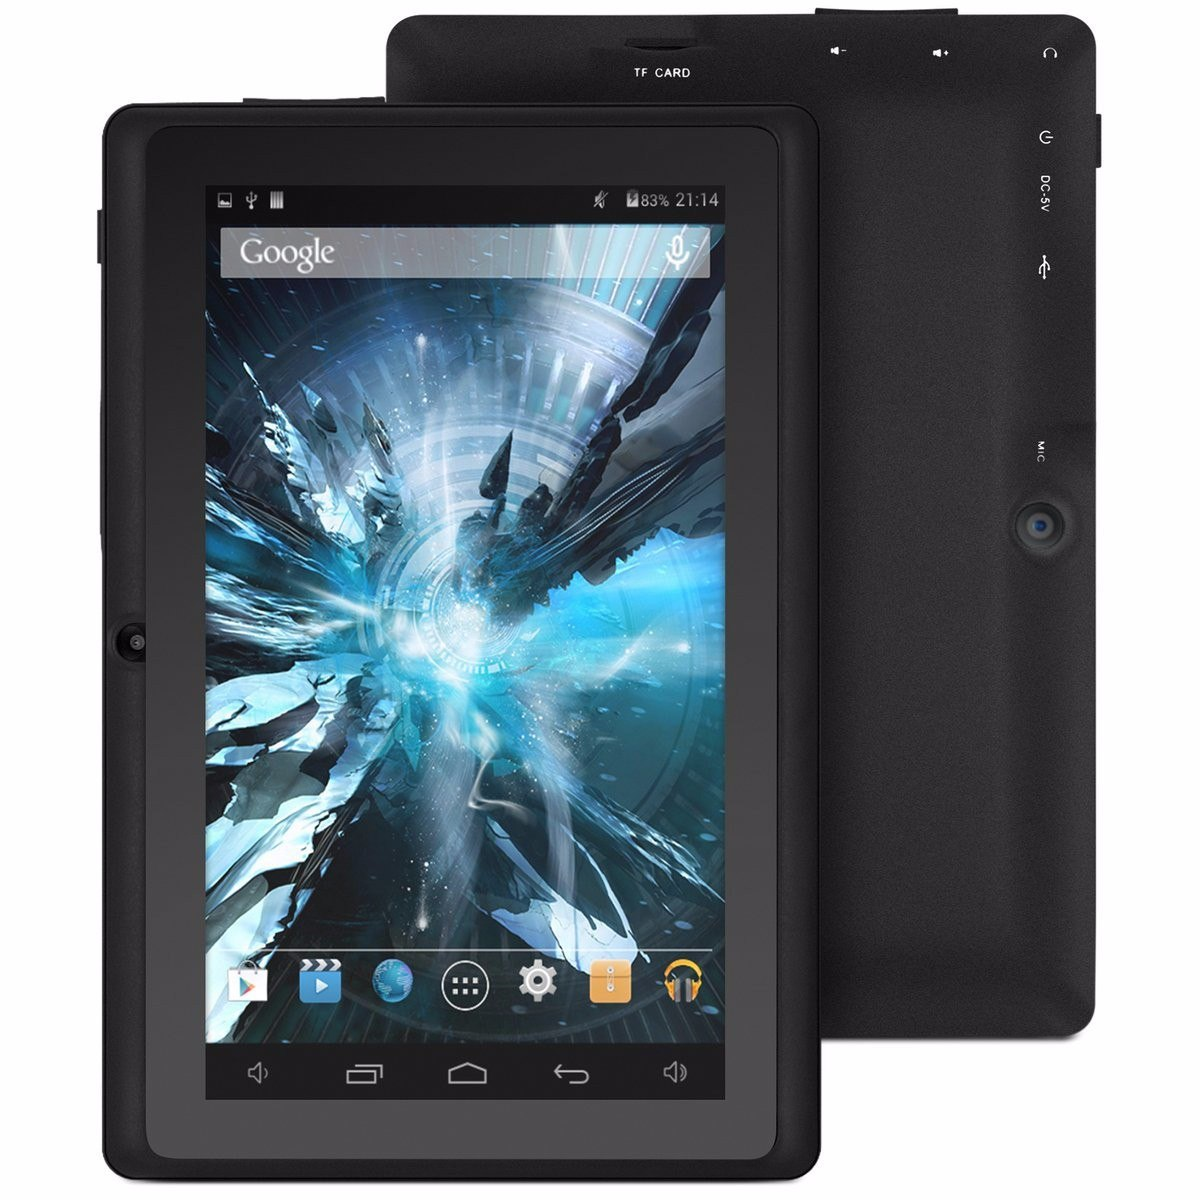 Tablet Prontotec 7 Android 4 4 Kitkat Tablet Pc Cortex A8